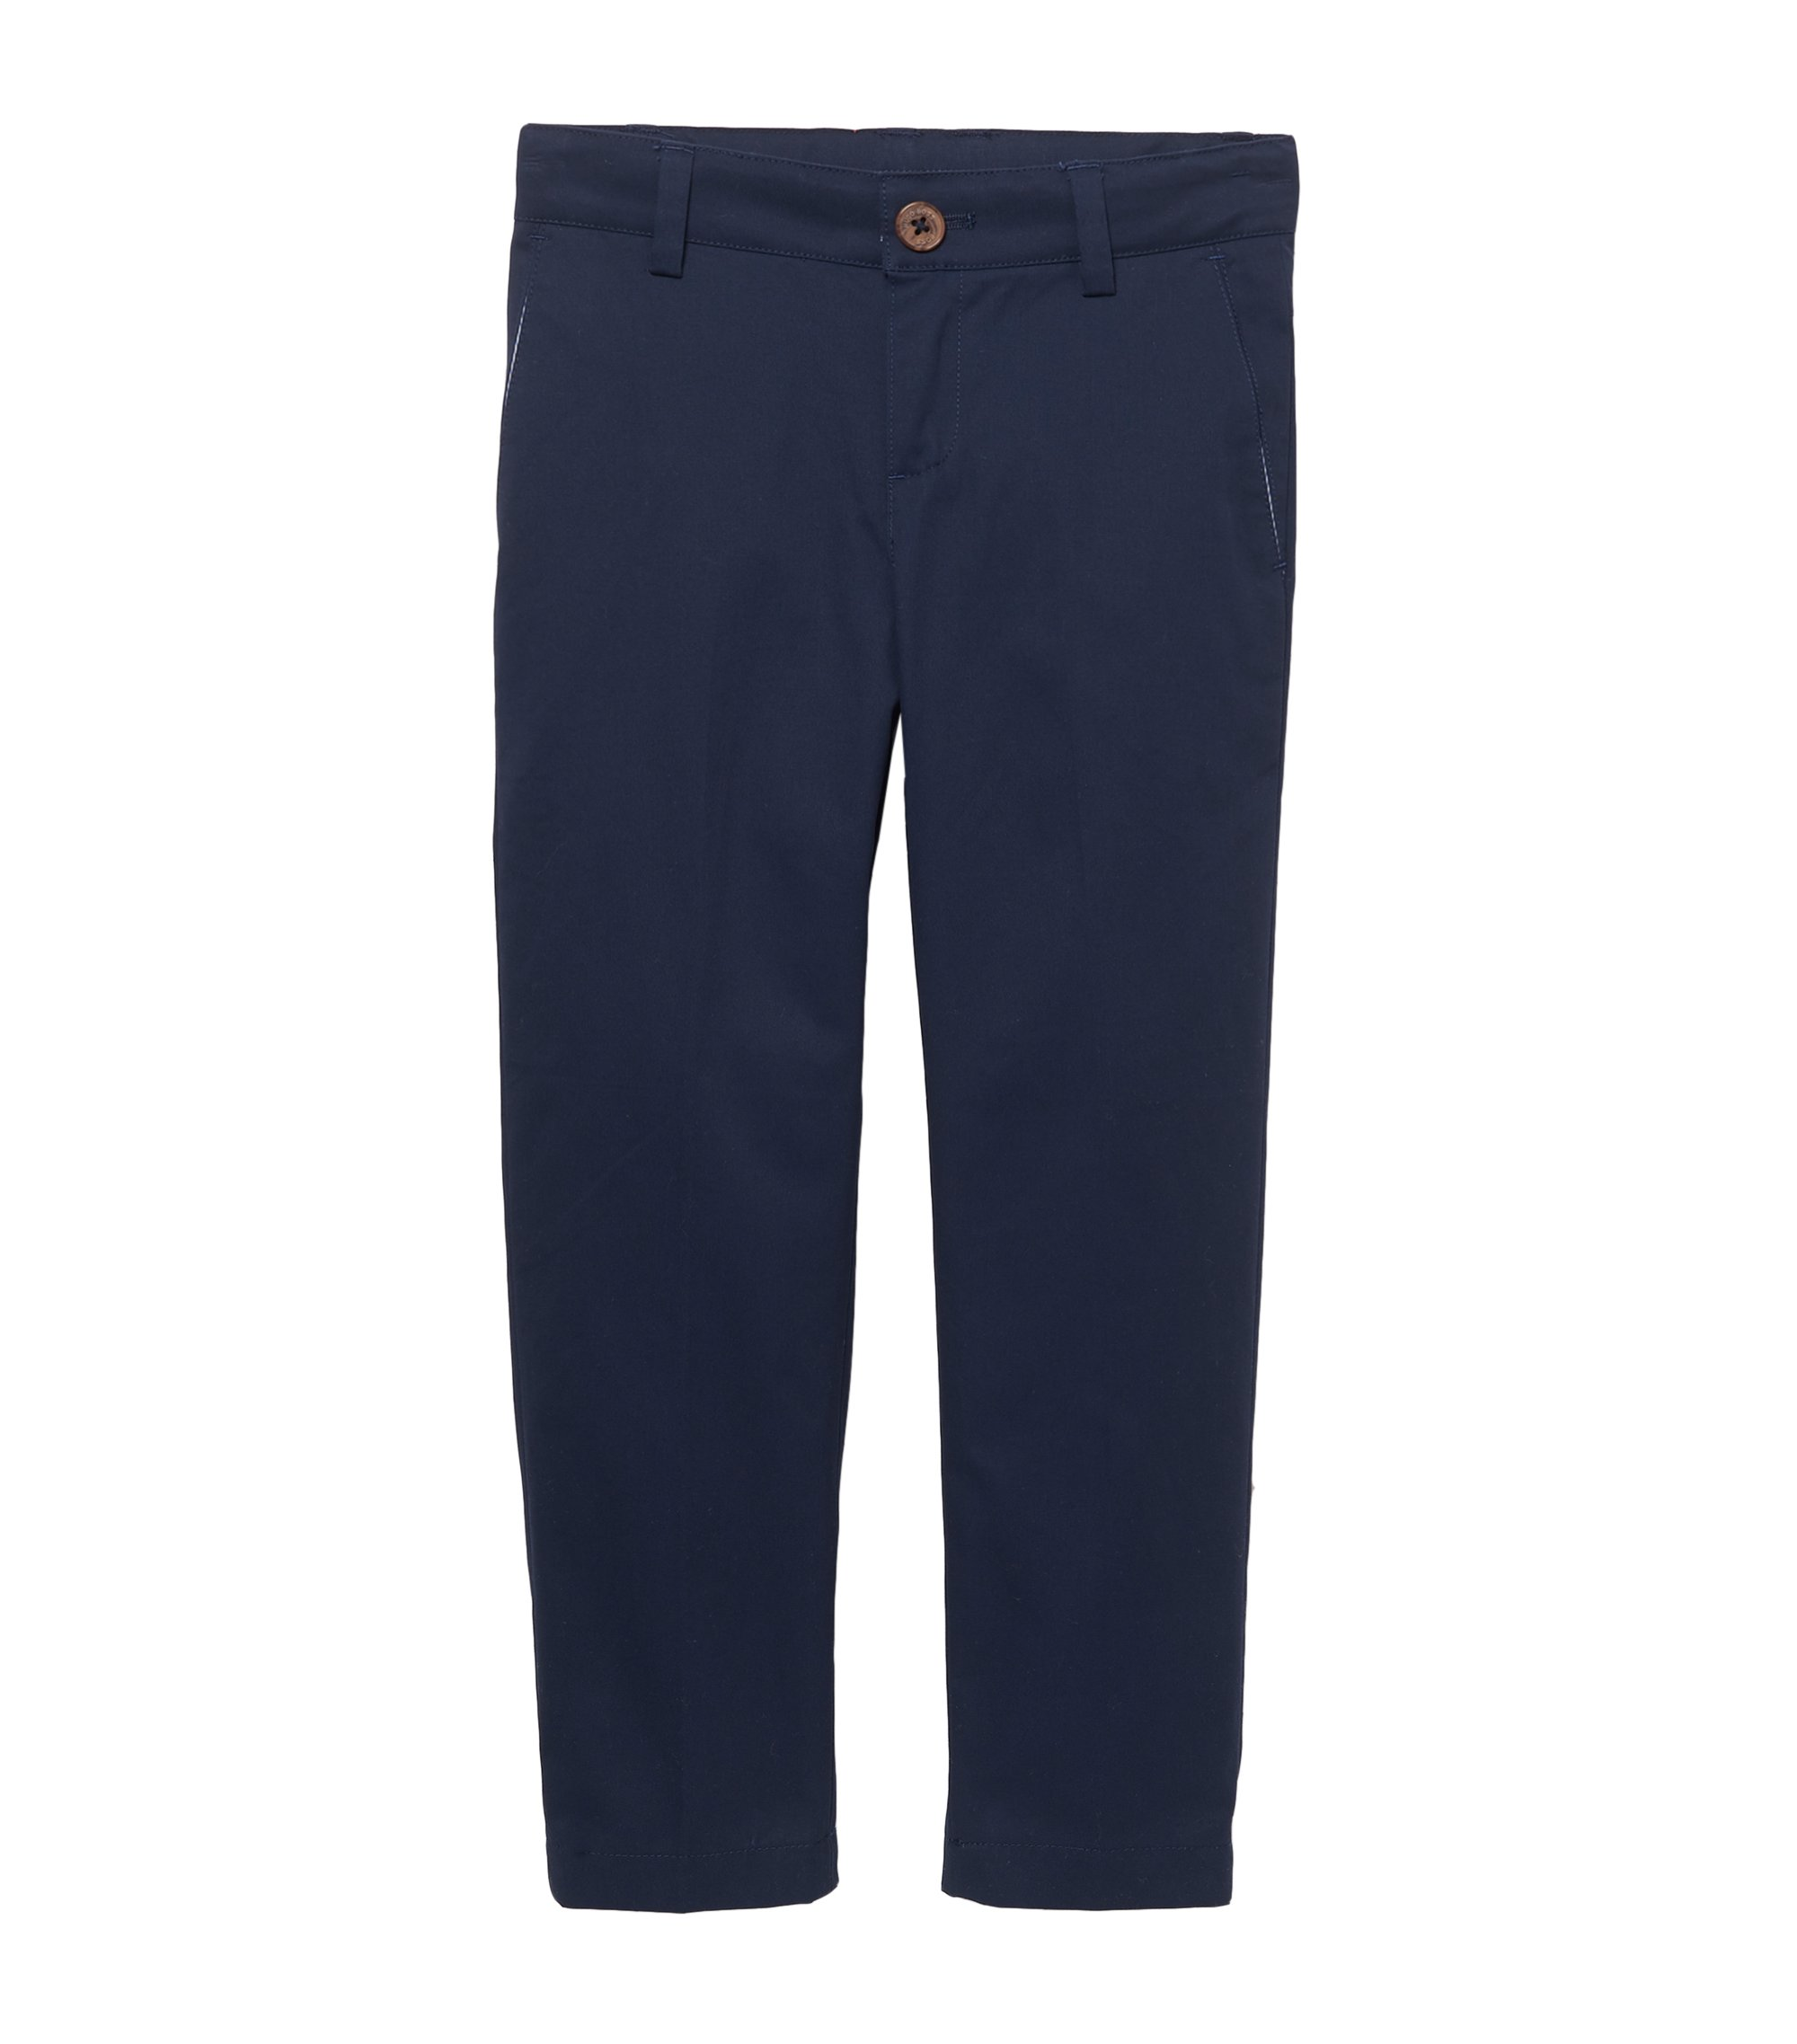 'J24399' | Boys Stretch Cotton Trousers, Dark Blue